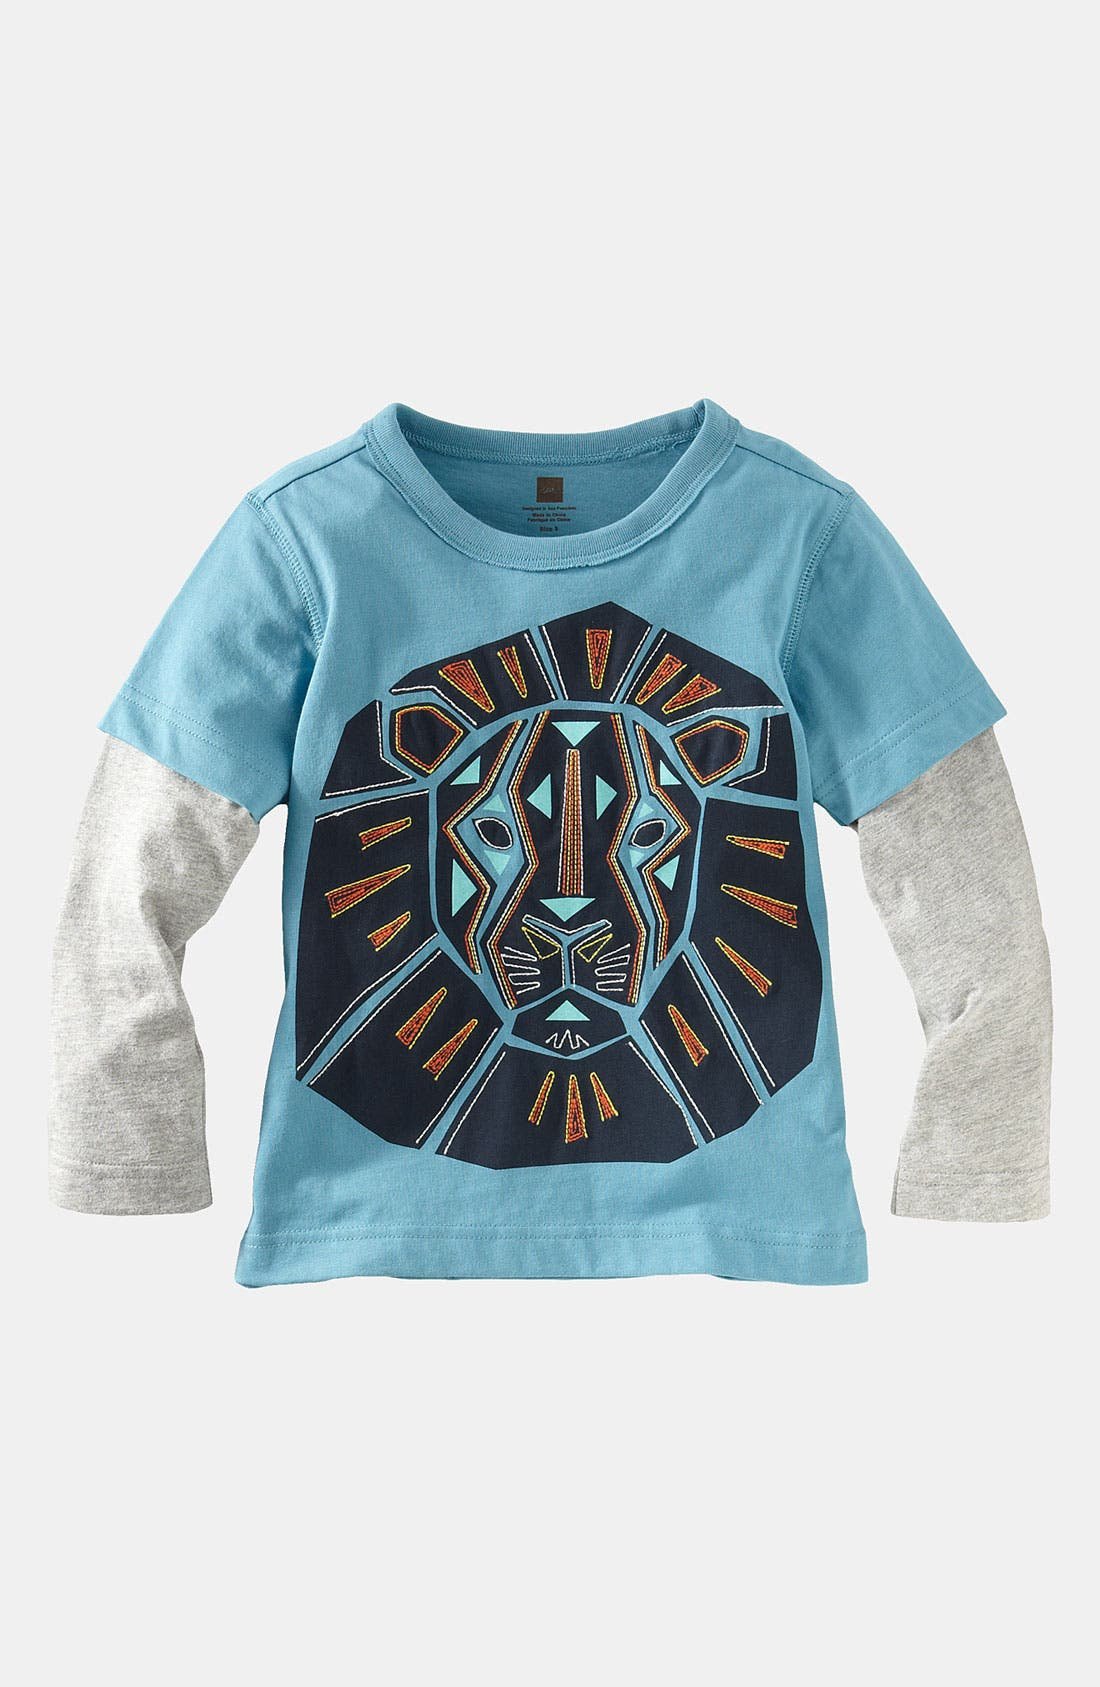 Alternate Image 1 Selected - Tea Collection Layered Sleeve T-Shirt (Toddler)